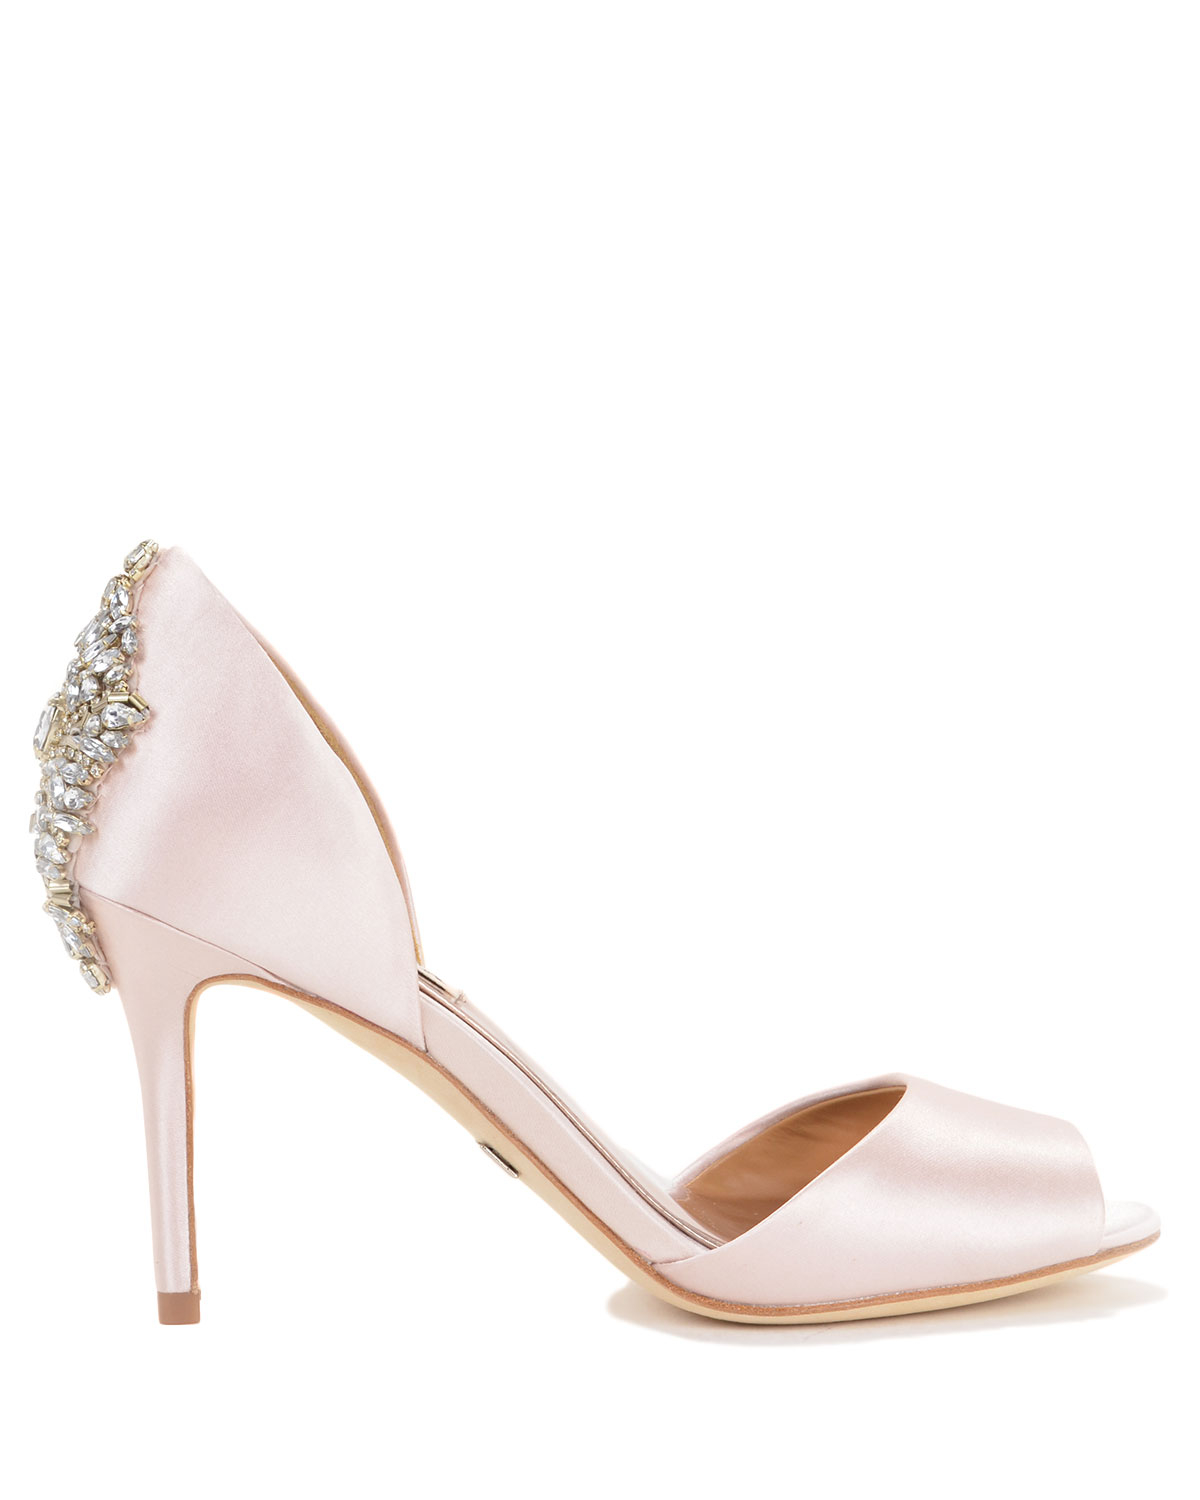 badgley mischka maxine decorated heel evening shoe in pink